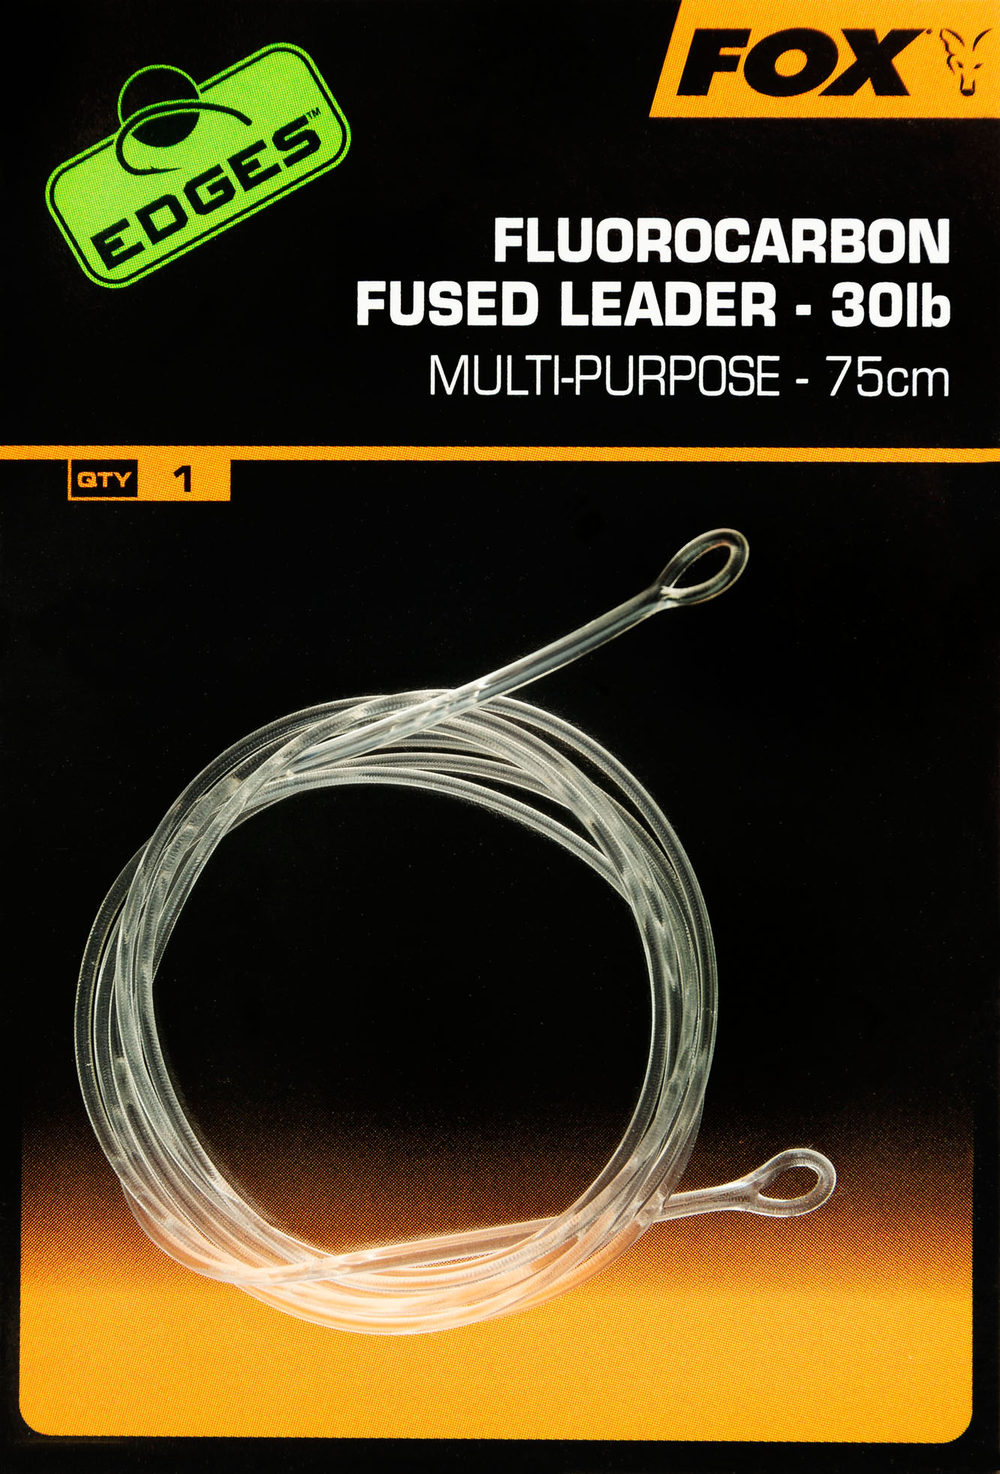 Edges-30lb-Fluorocarbon-Fused-Leader_Multi_75cm.png